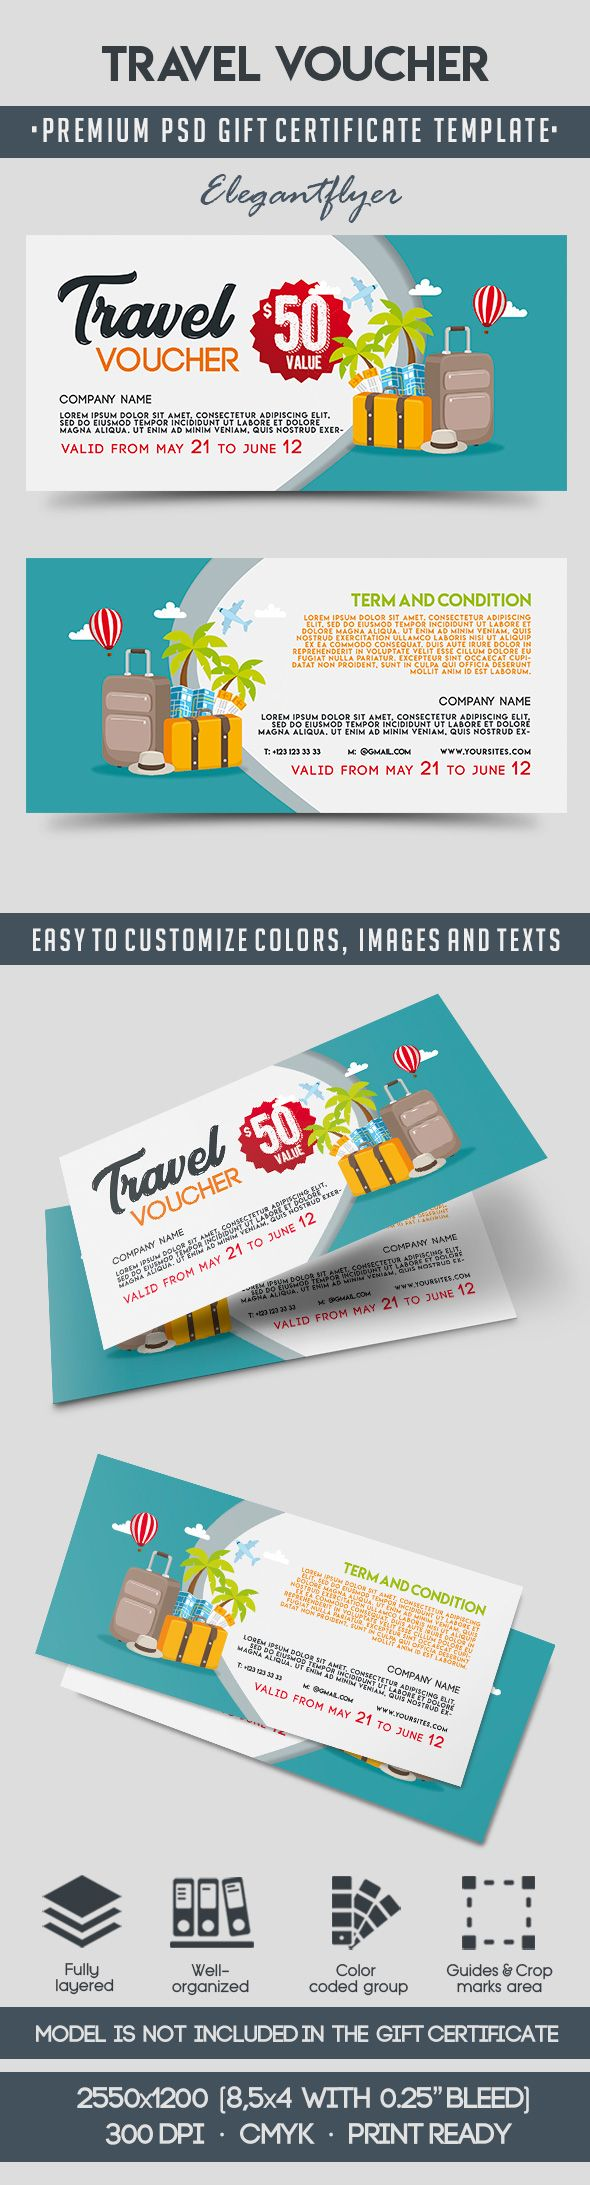 Travel Voucher Template By Elegantflyer